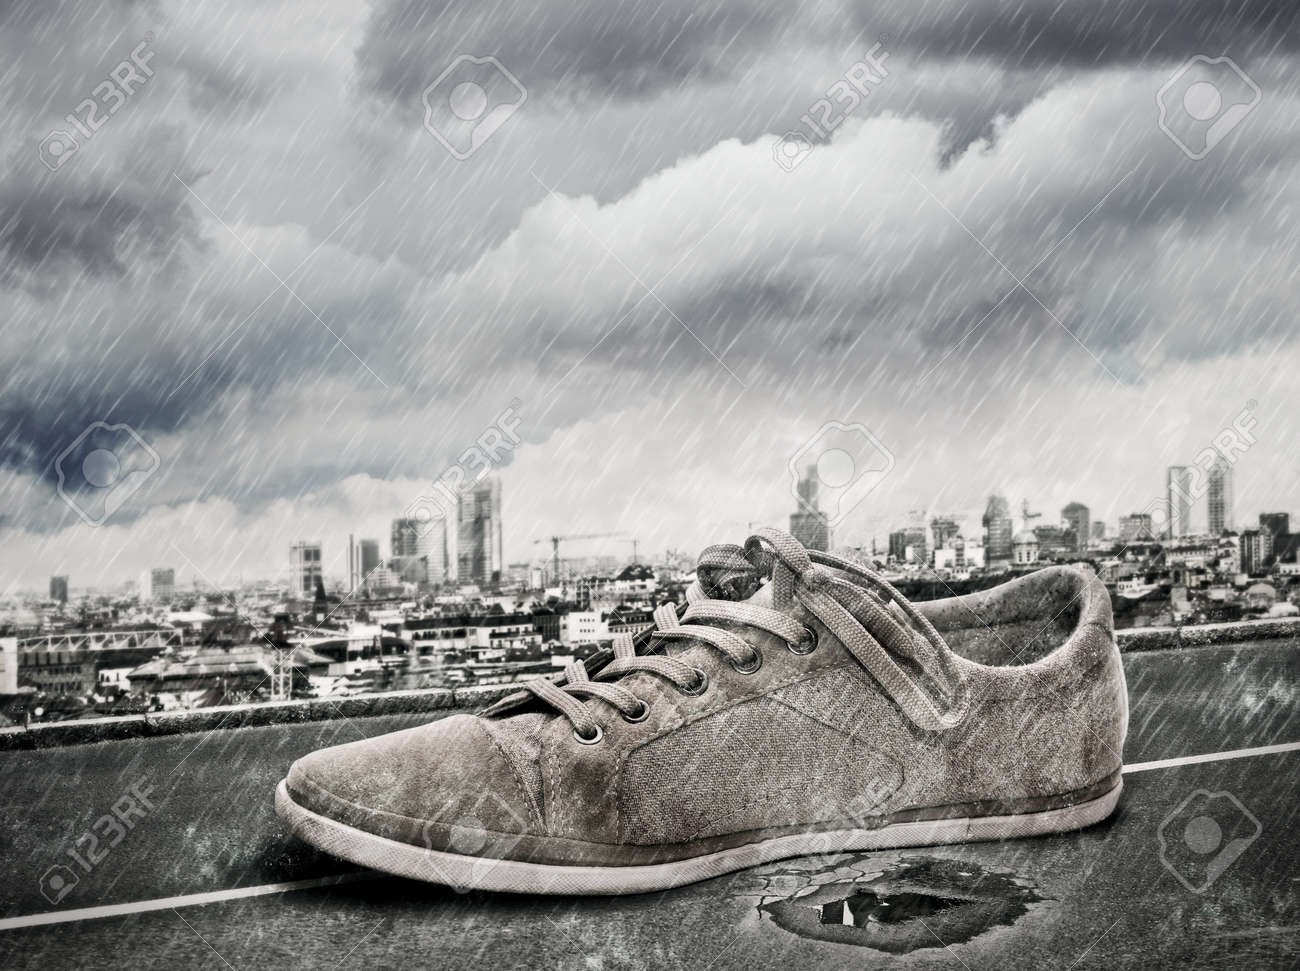 Single shoes walking on the street while is raining Stock Photo - 11293174